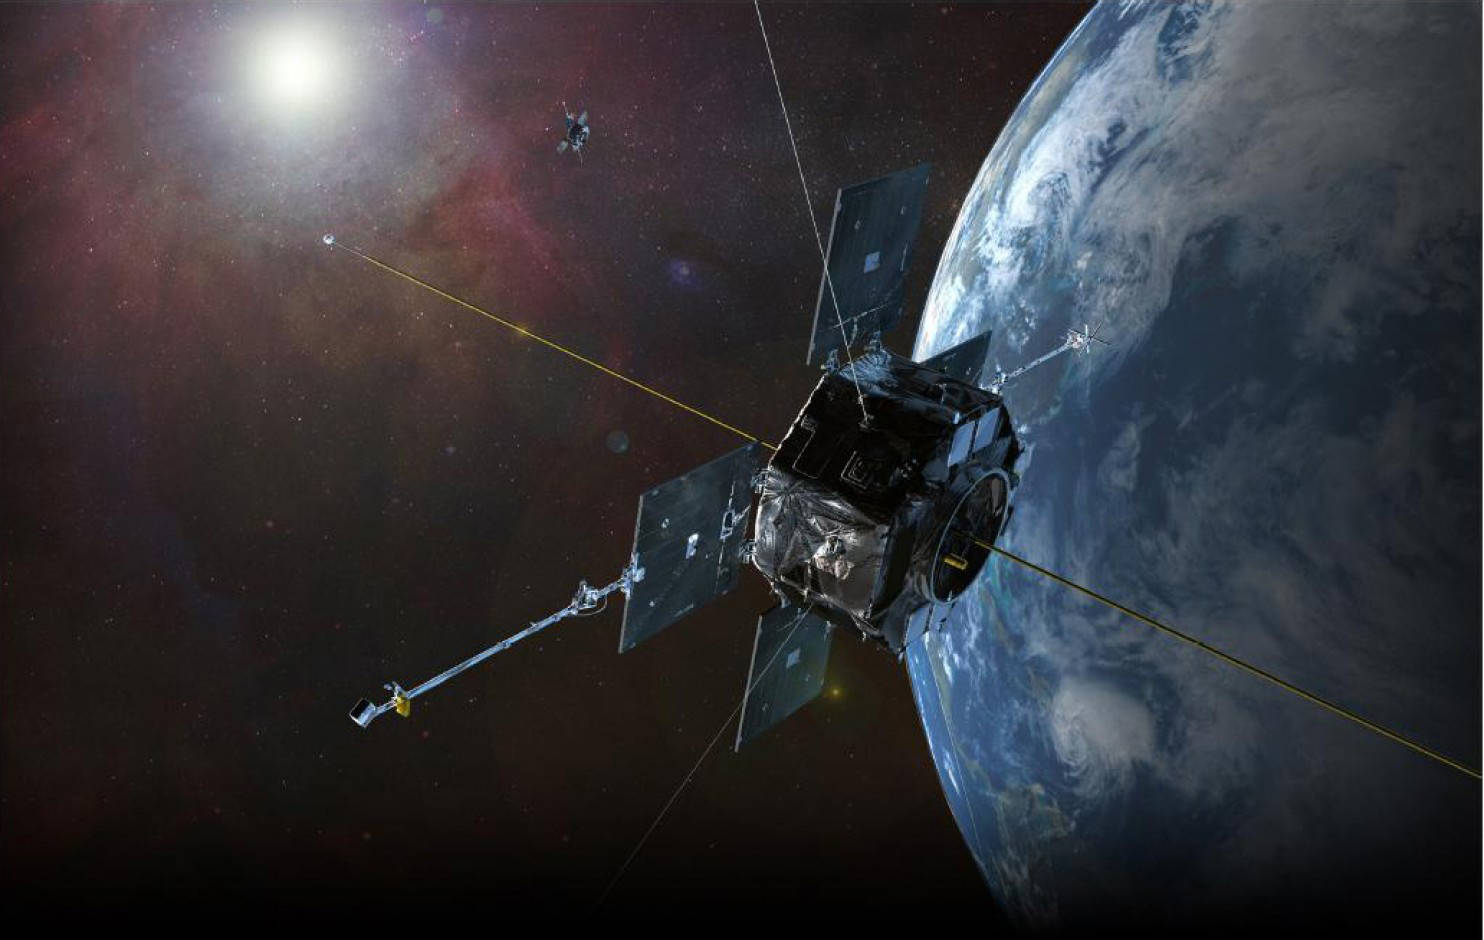 This illustration depicts NASA's twin Van Allen Probes in orbit within Earth's magnetic field to explore the radiation belts. (NASA photo)